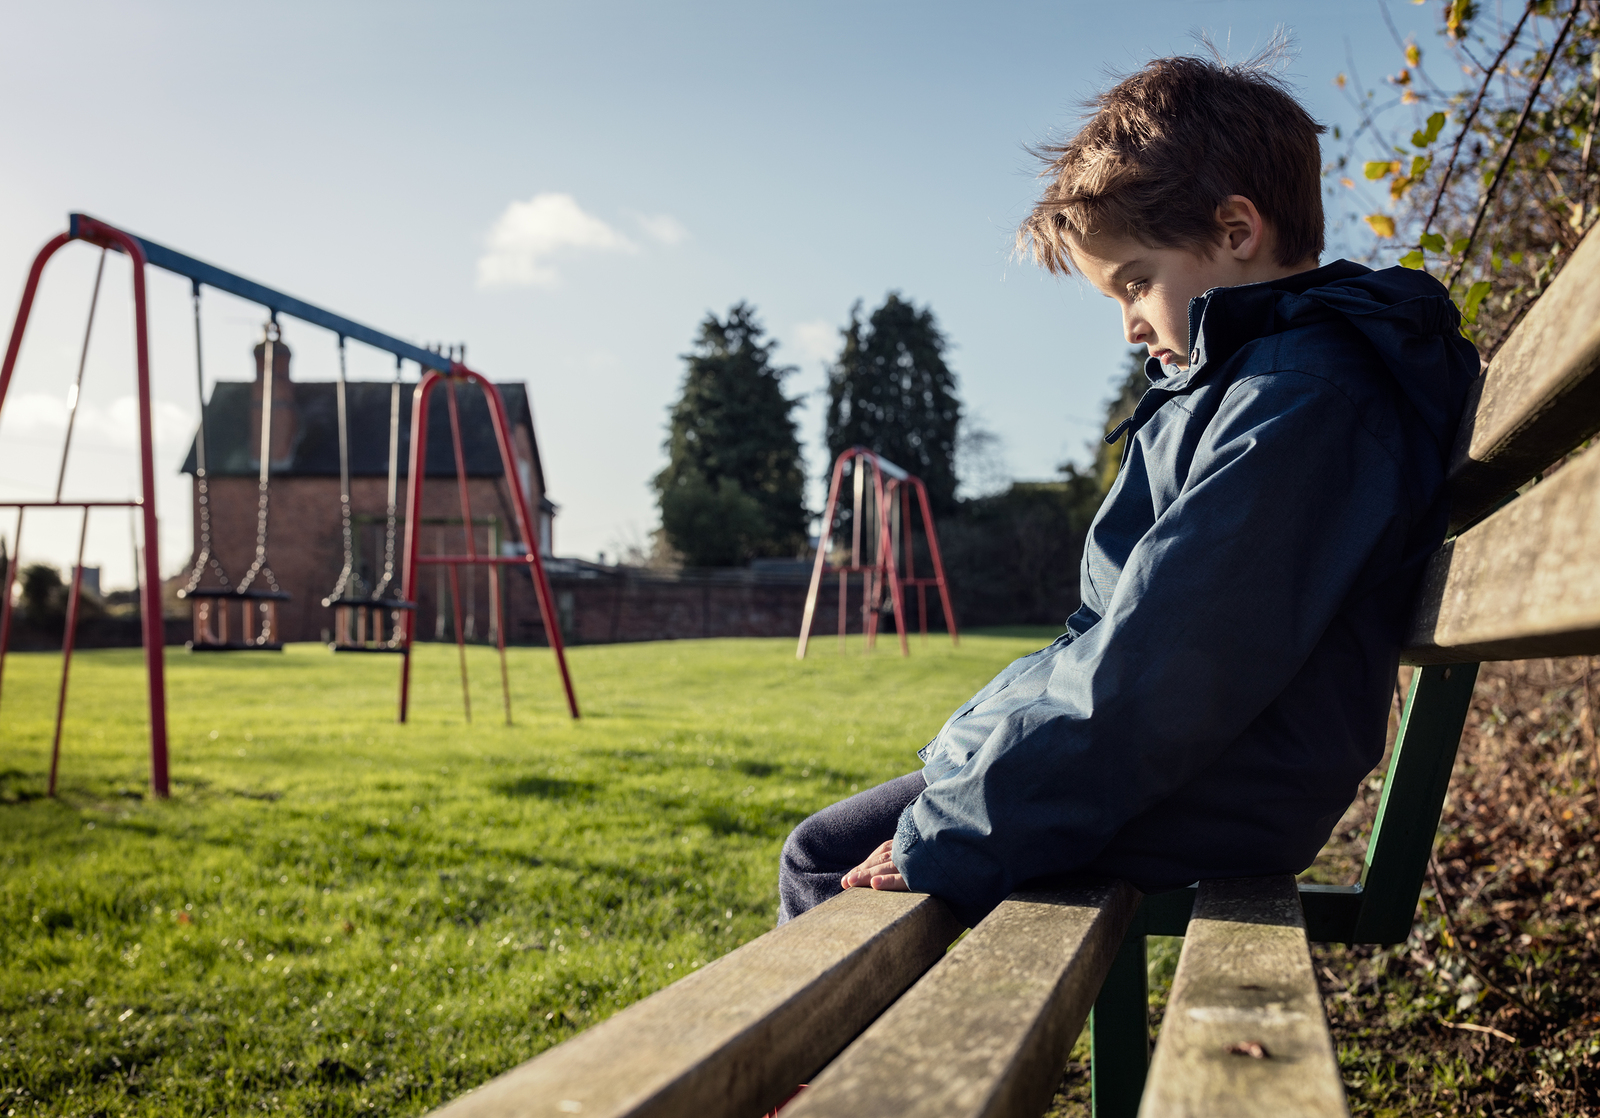 Keeping Kids Safe: Moving the Conversation to Tricky People